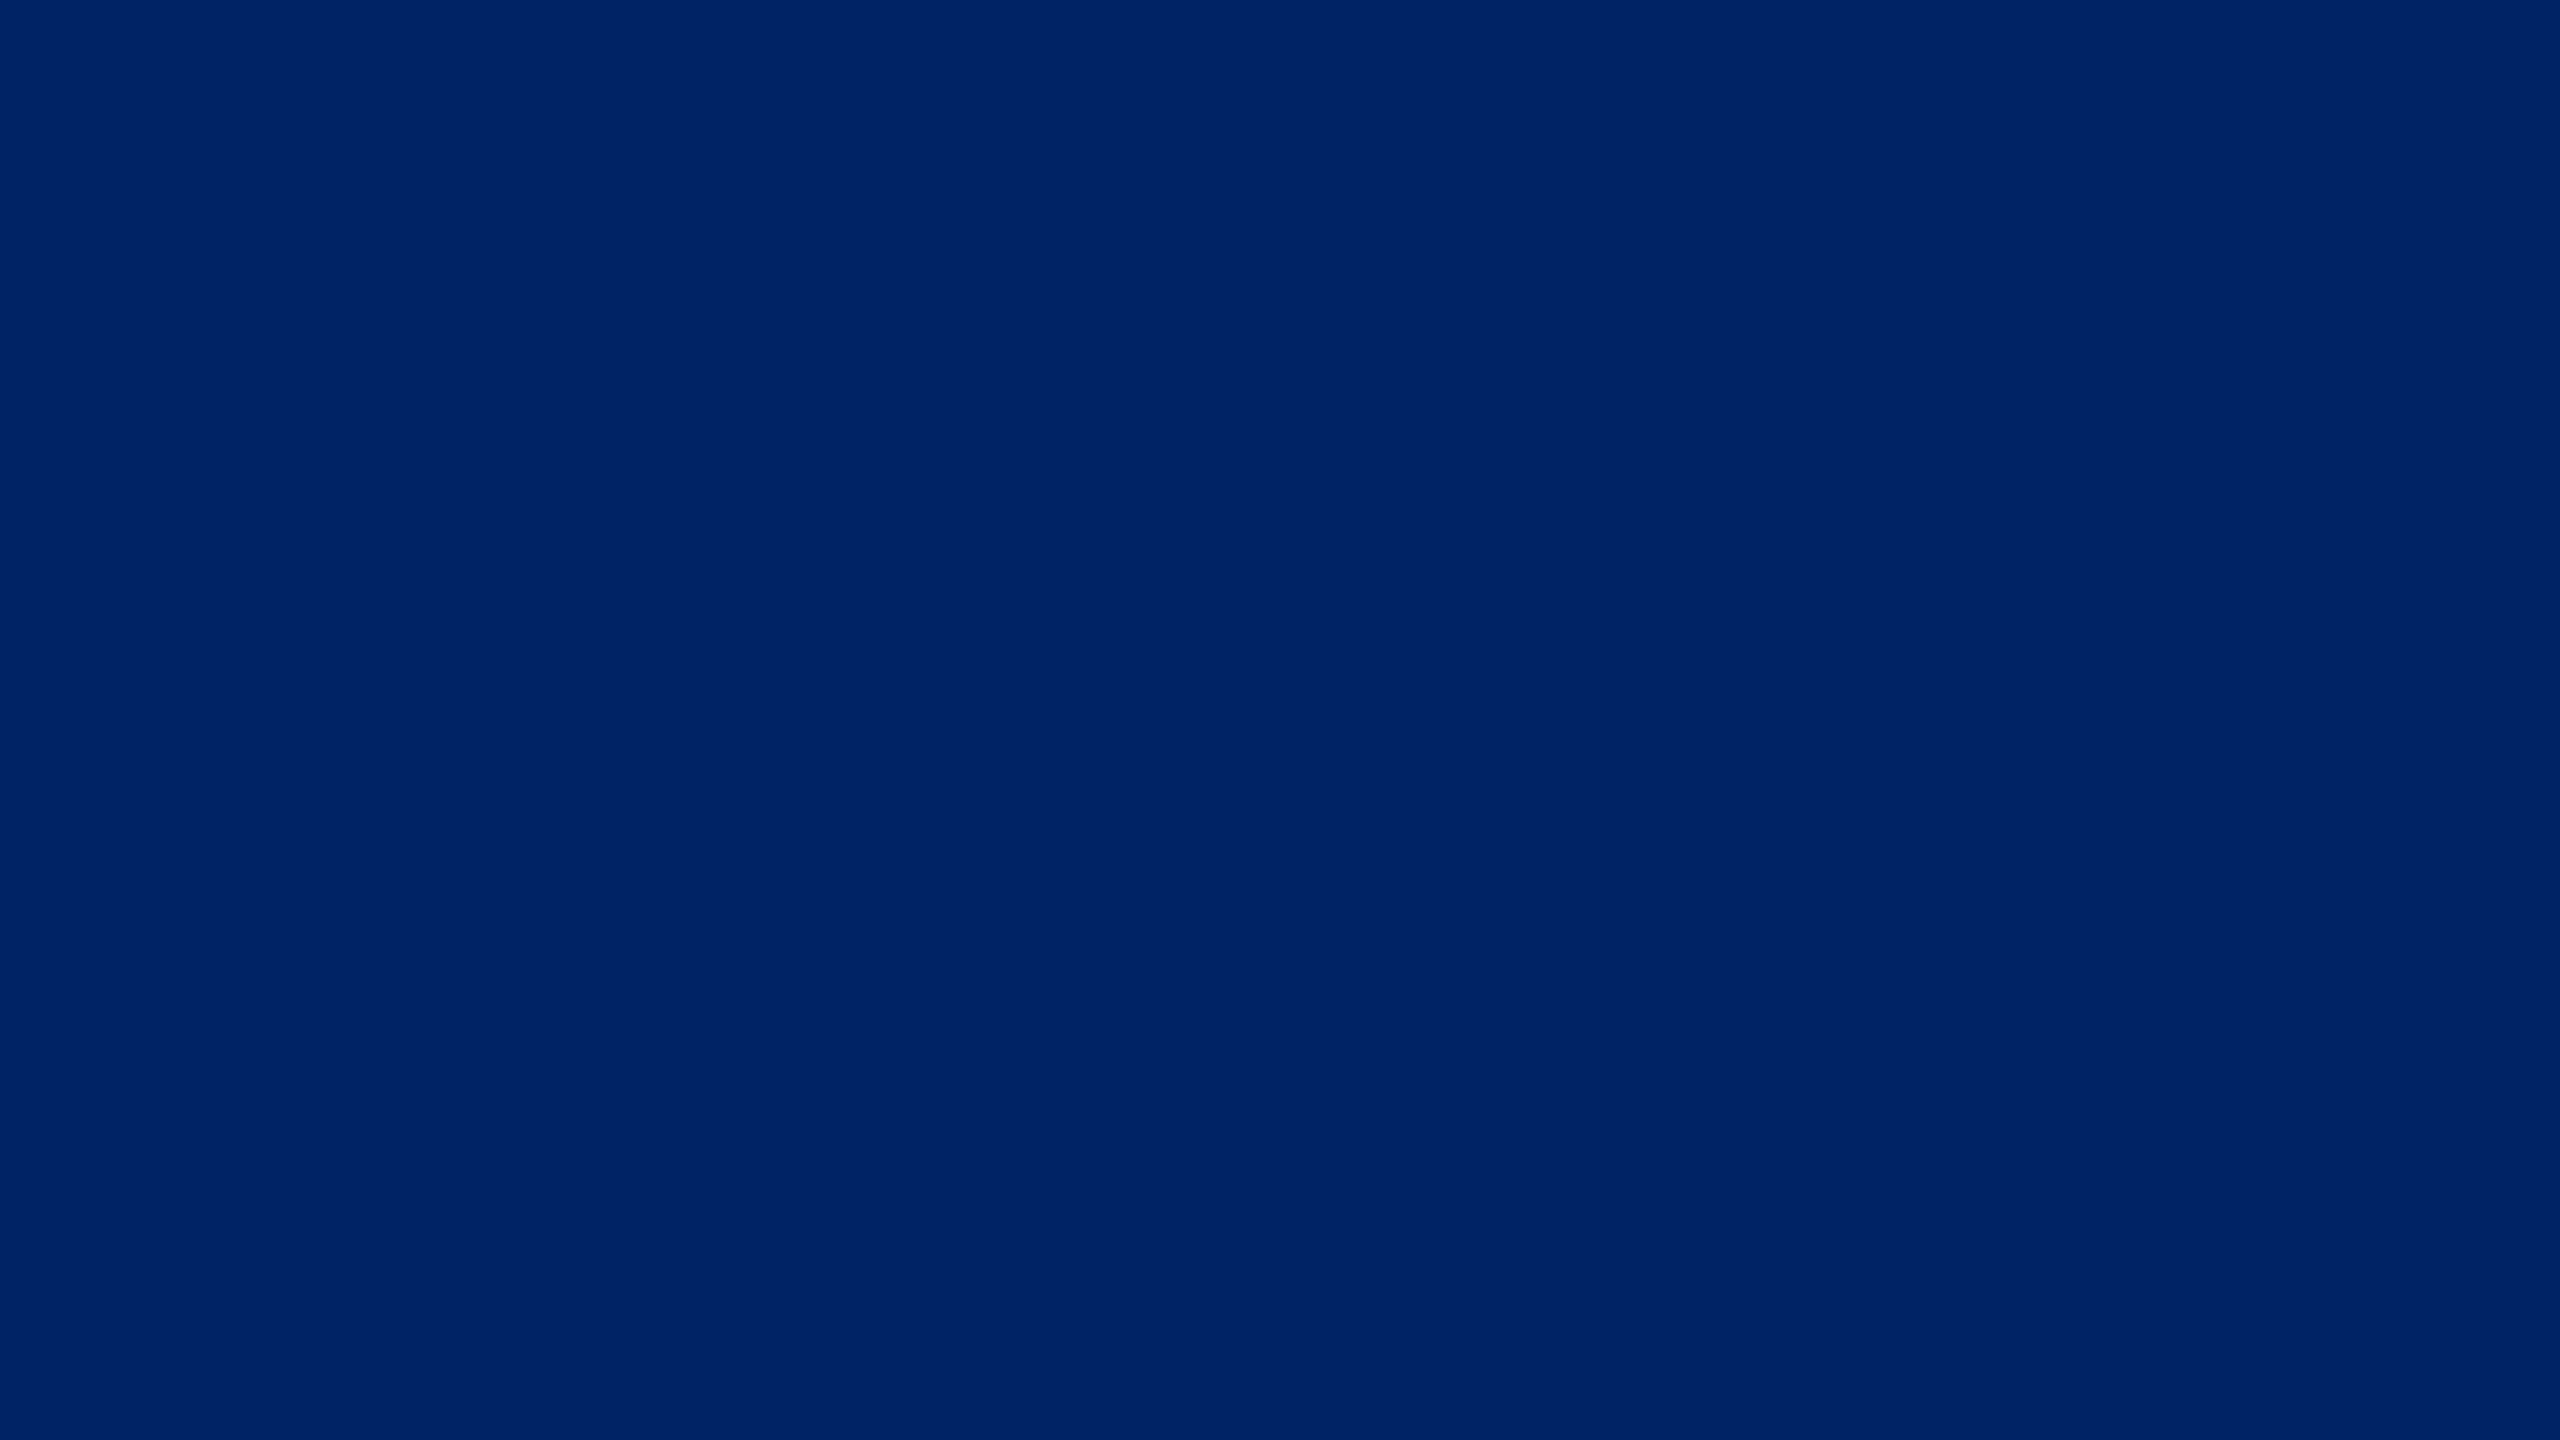 2560x1440 Royal Blue Traditional Solid Color Background